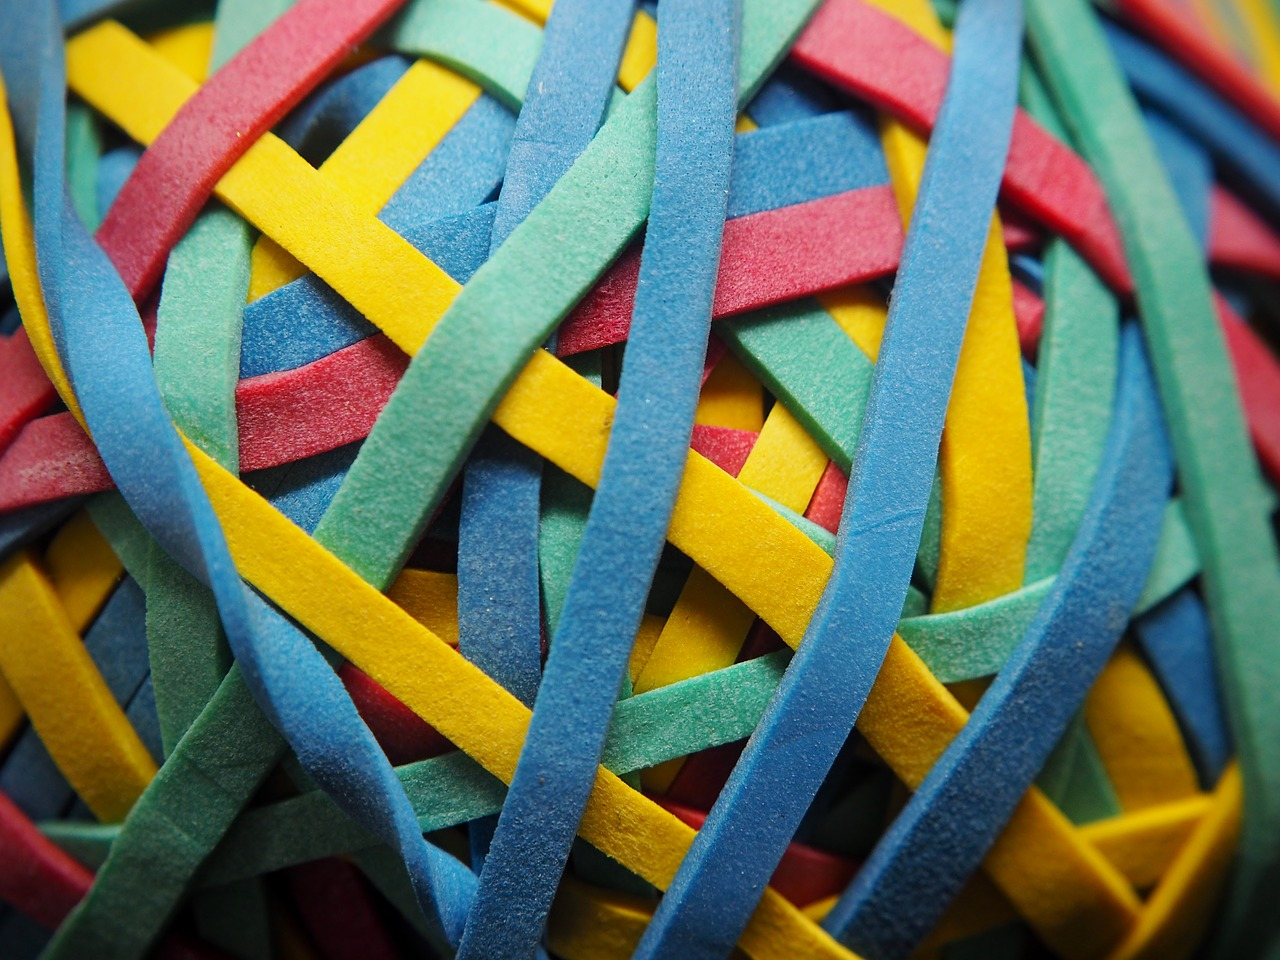 rubber band colorful knot free picture